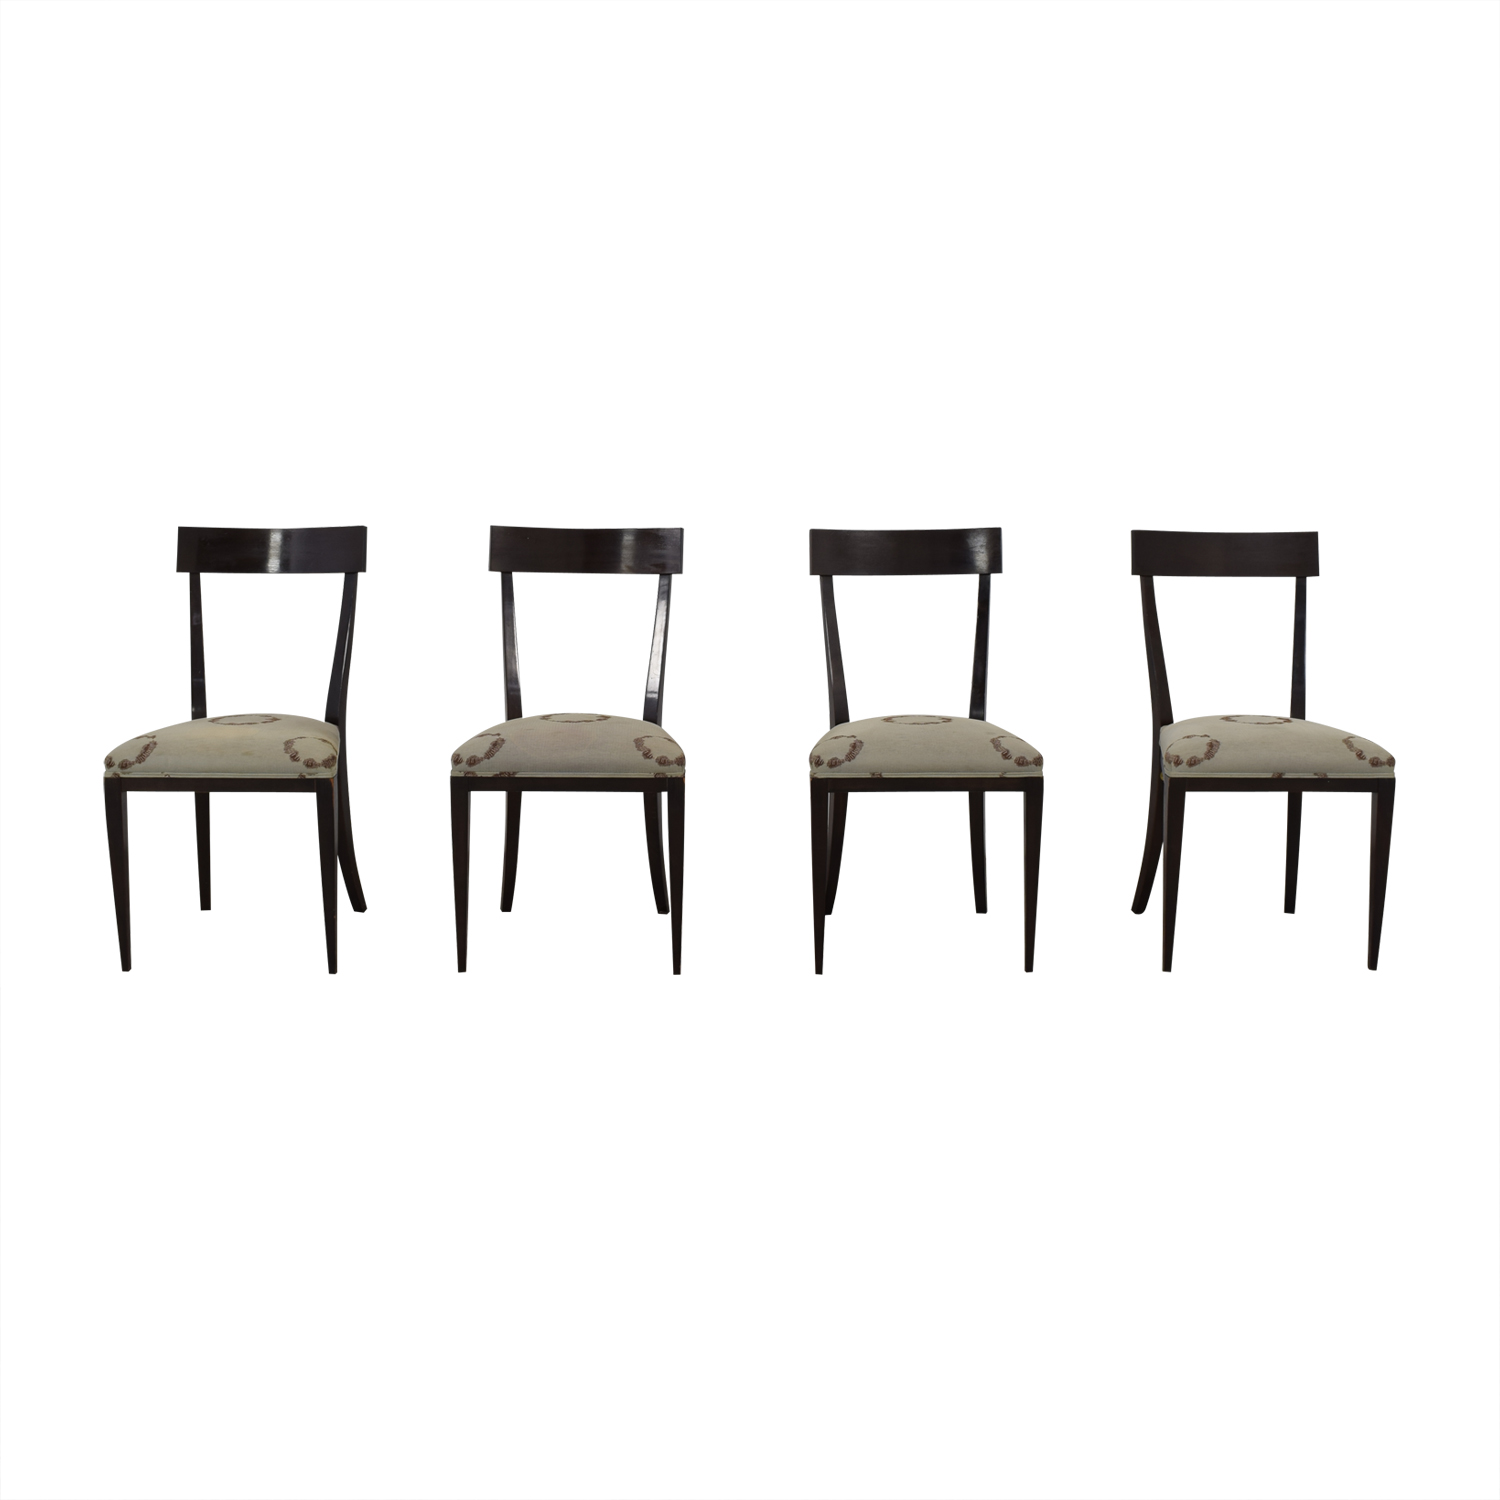 shop Annibale Colombo Dining Room Chairs Annibale Colombo